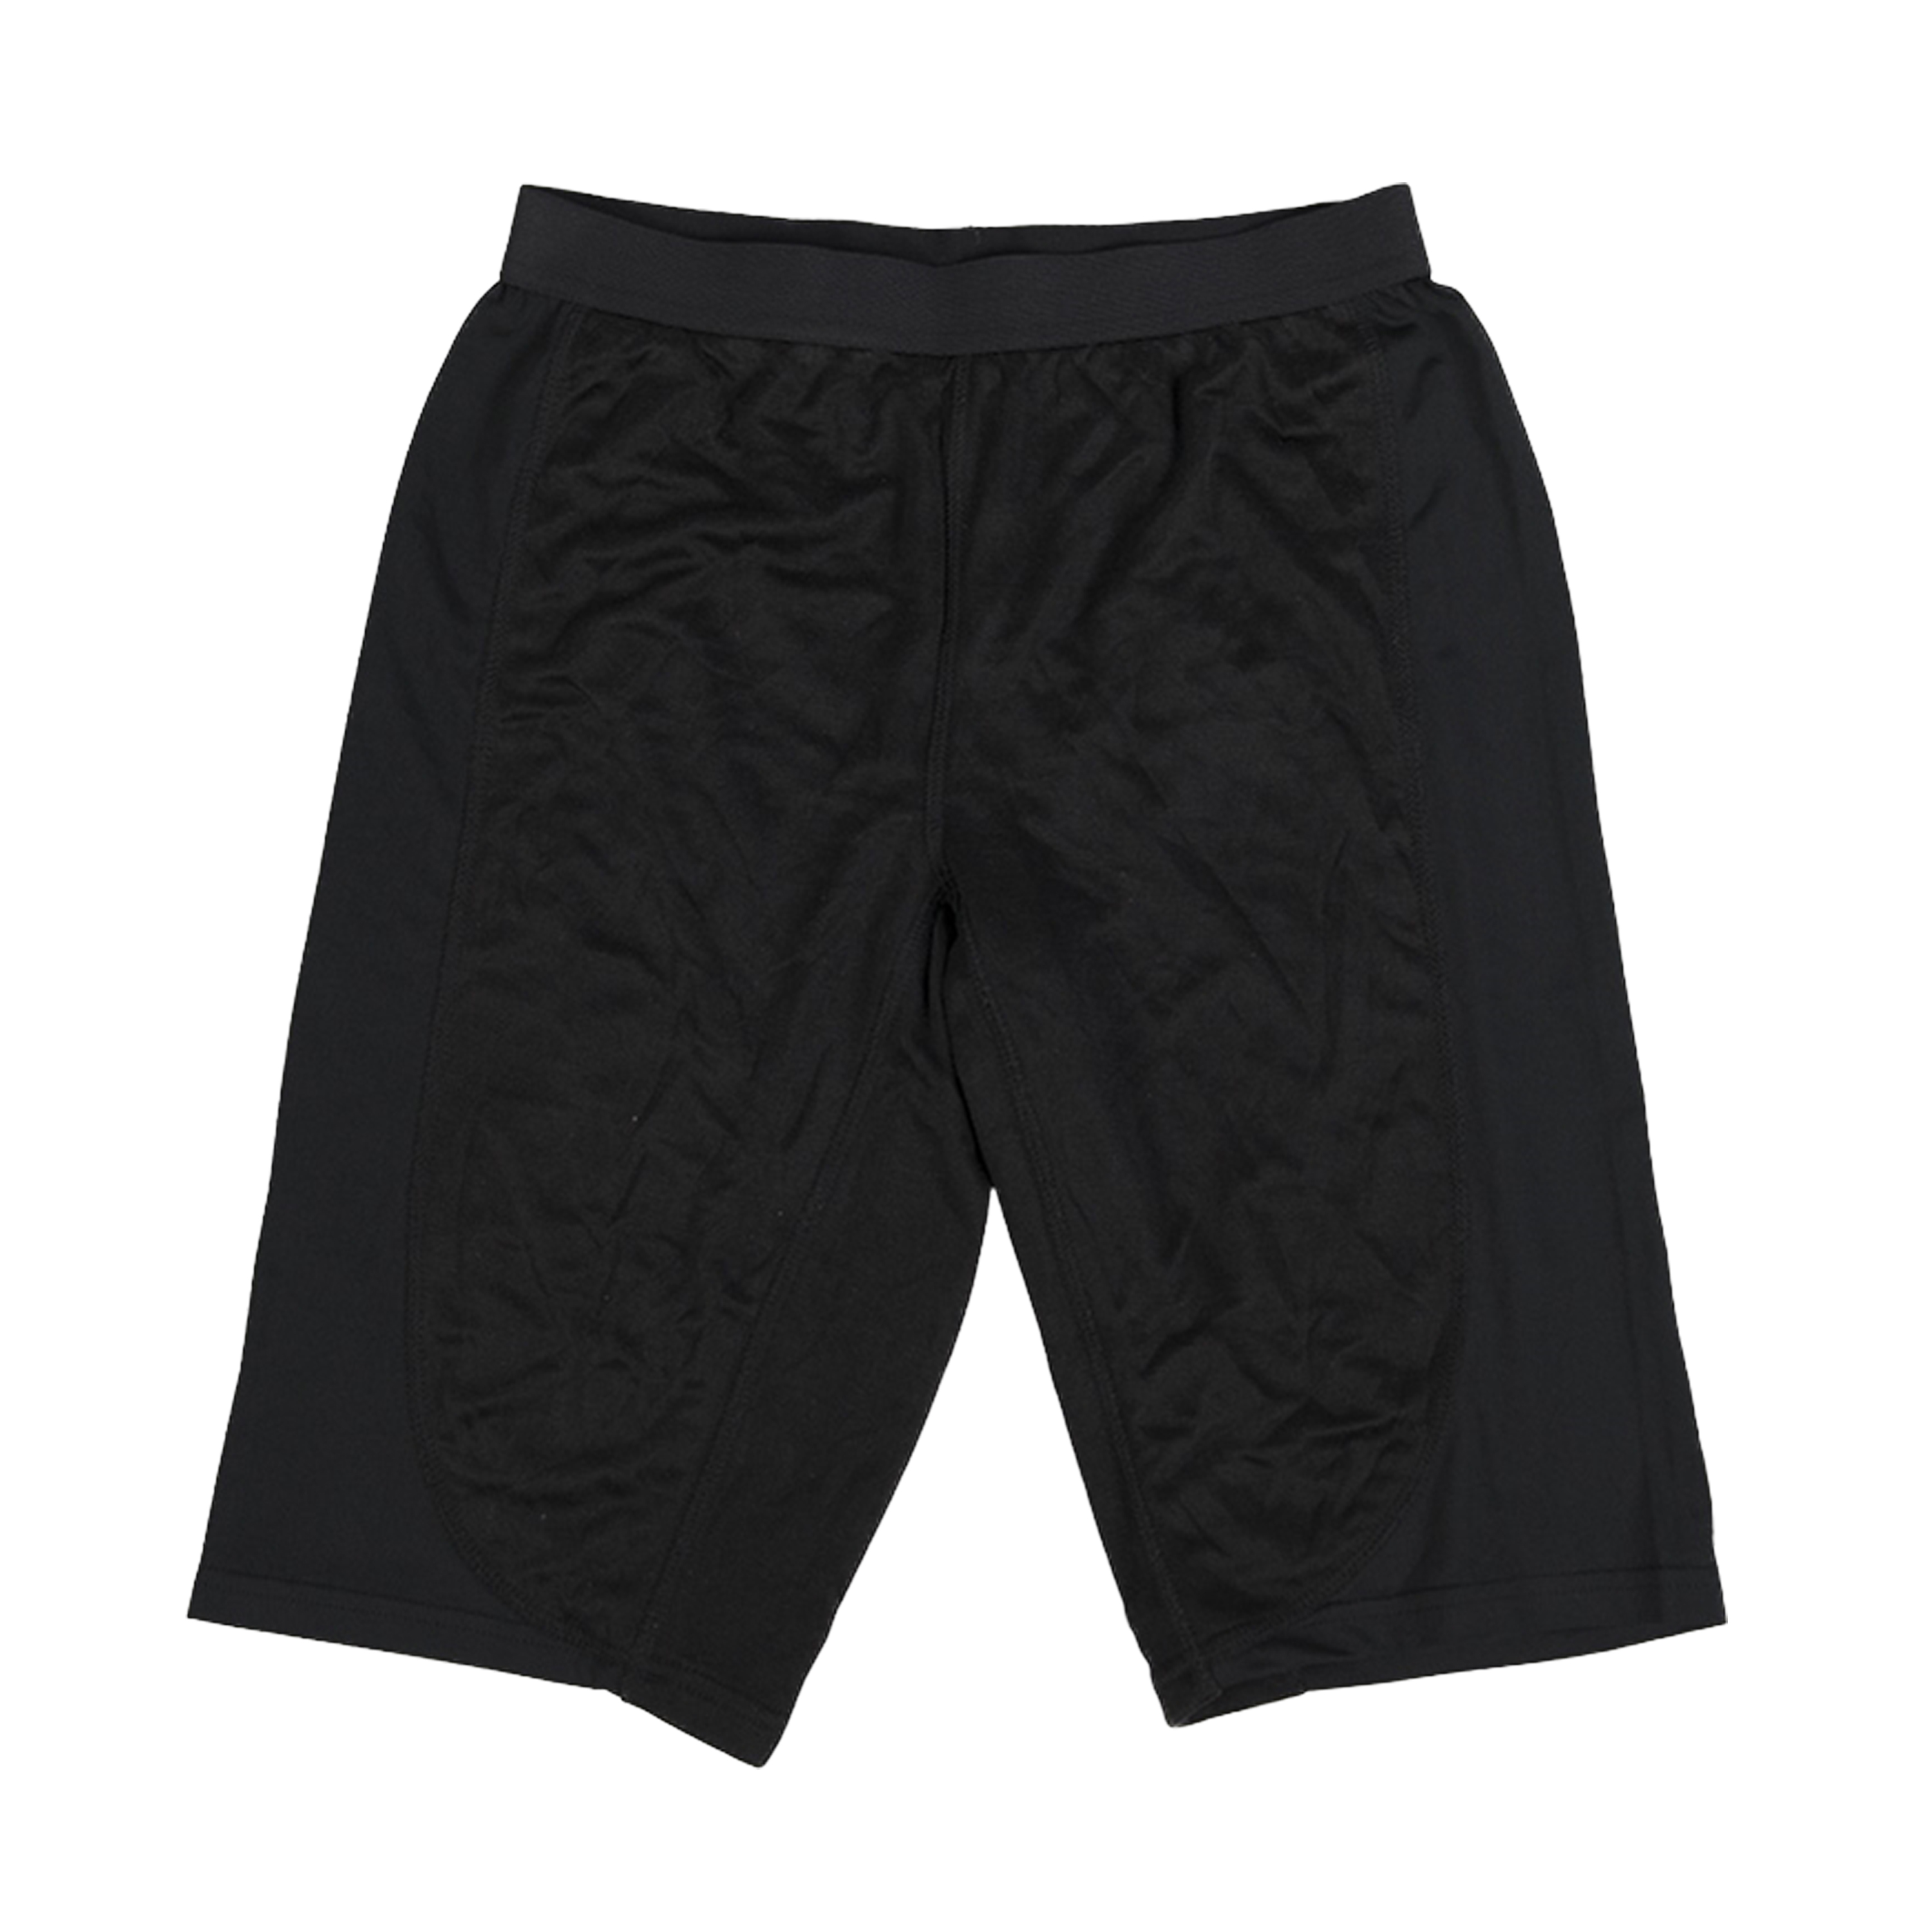 British Boxer Shorts Double Material Like New black